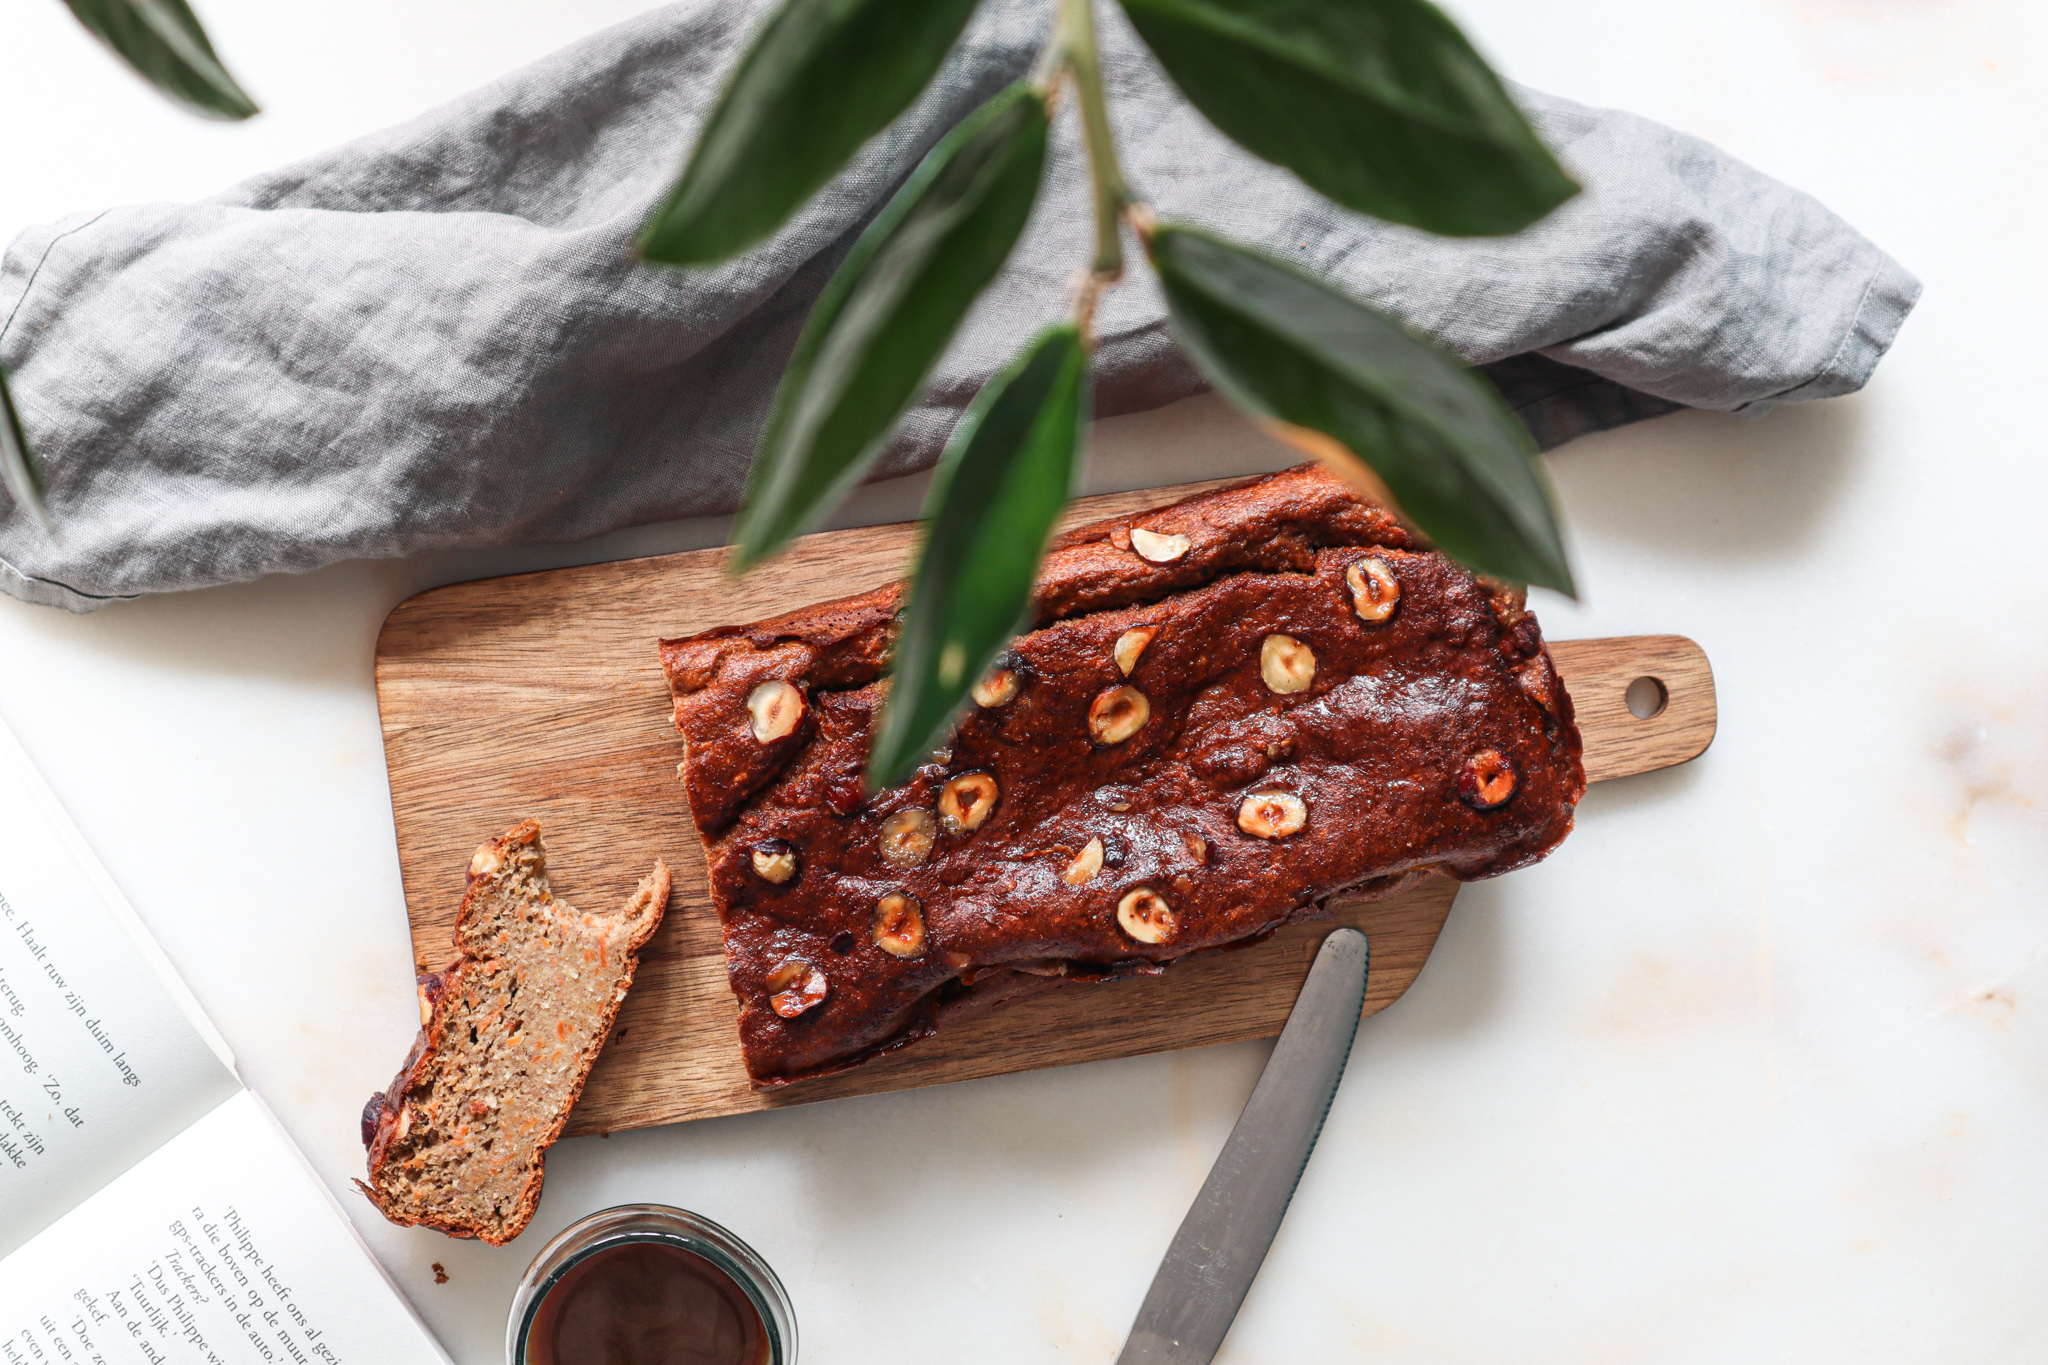 This isn't just a regular banana bread, it's a healthy delicious mix of a moist carrot cake with your favorite banana bread.